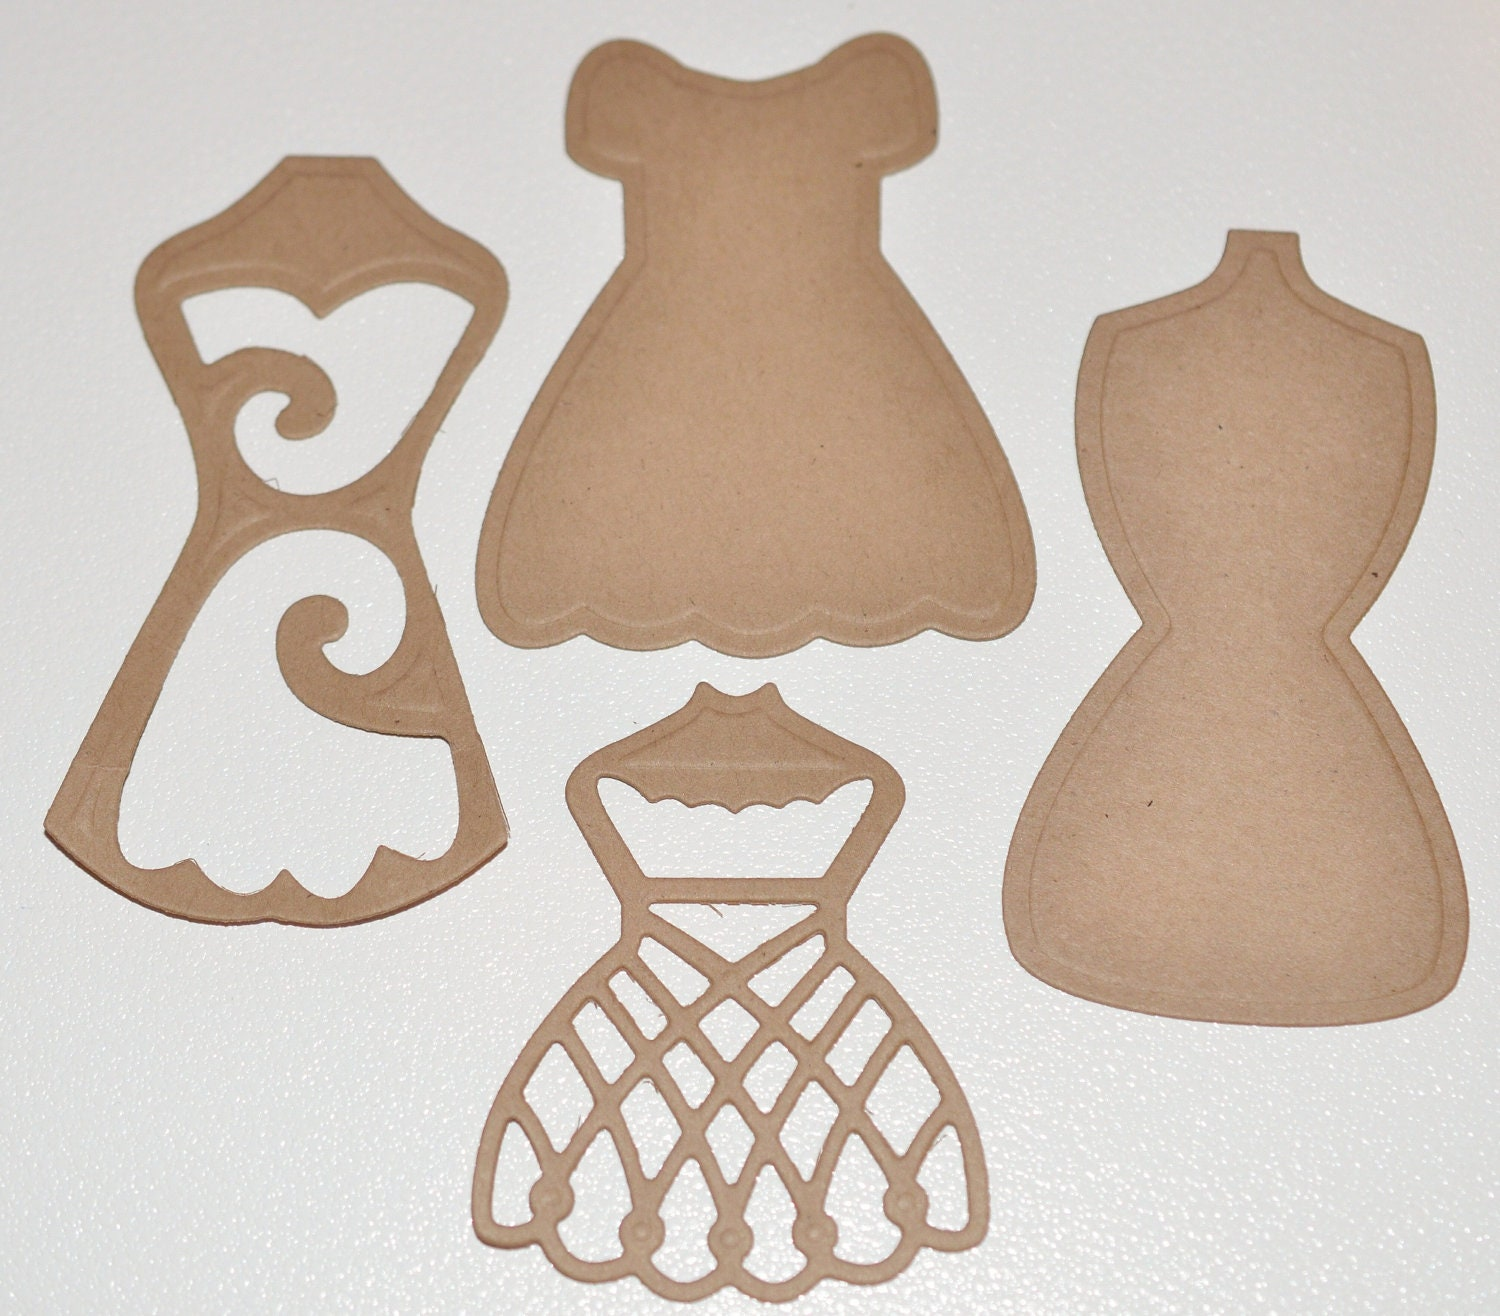 Dress Die Cuts Dressform Dress Form Spellbinders Scrapbooking